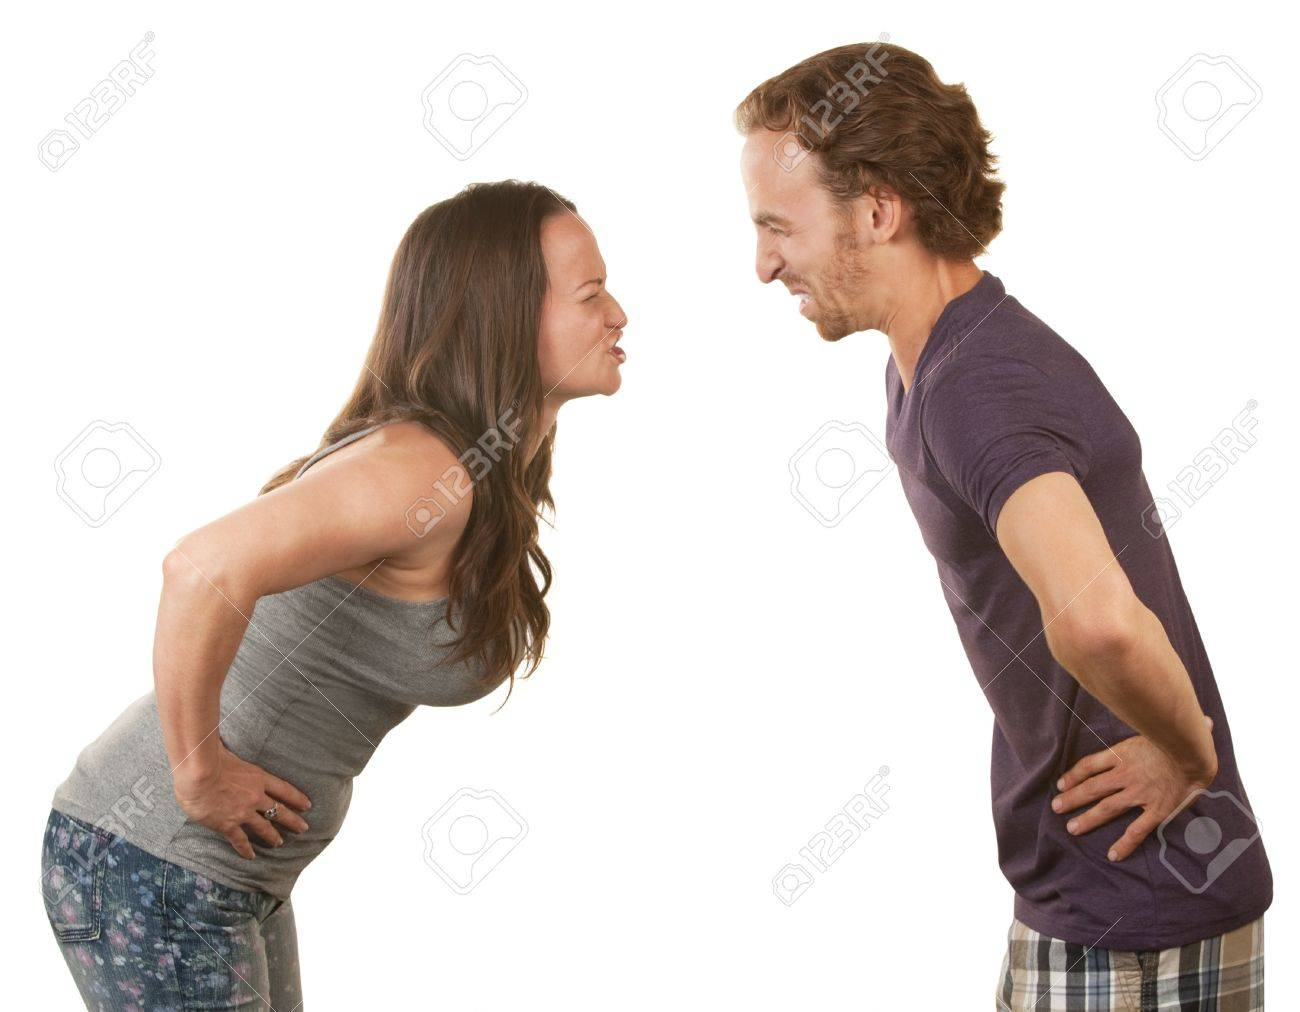 Frustrated spouses closed eyes arguing over isolated background Stock Photo - 16289625